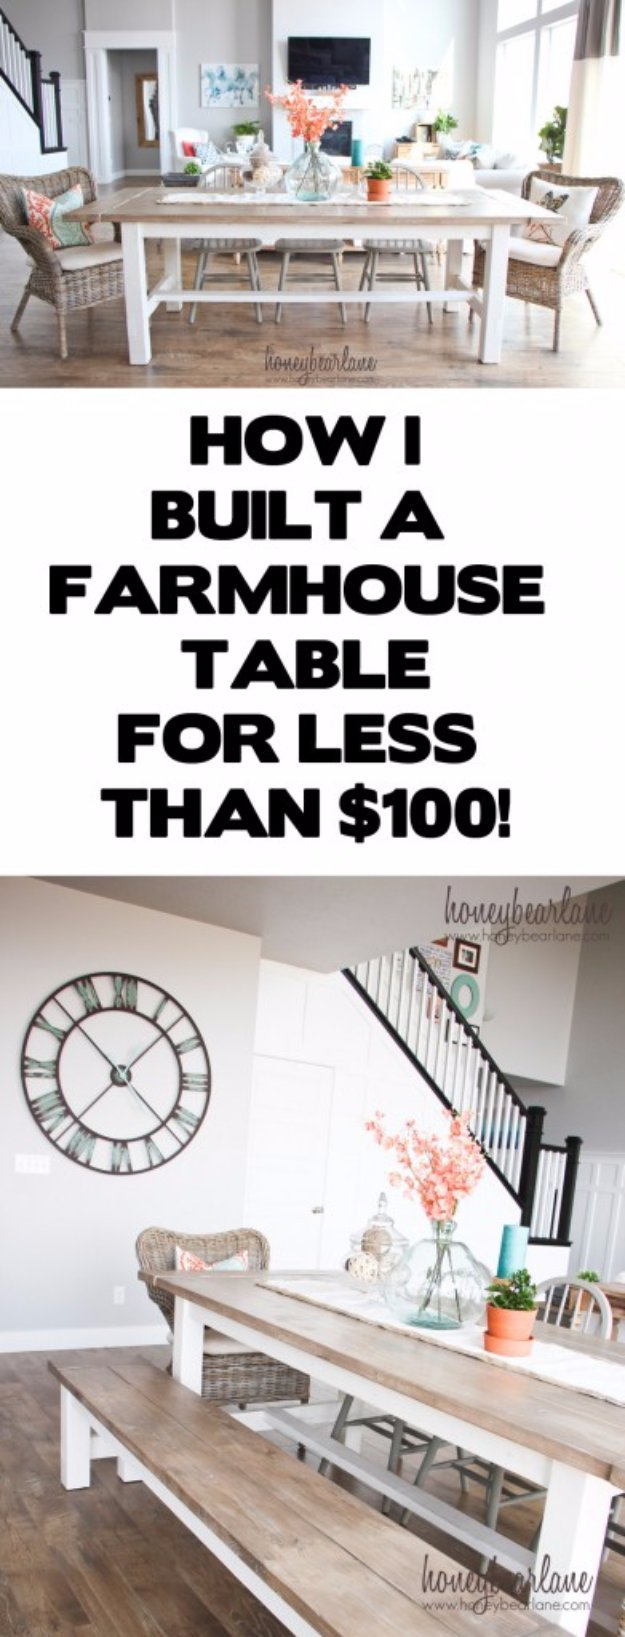 DIY Dining Room Decor Ideas - DIY Farmhouse Table and Bench - Cool DIY Projects for Table, Chairs, Decorations, Wall Art, Bench Plans, Storage, Buffet, Hutch and Lighting Tutorials http://diyjoy.com/diy-dining-room-decor-ideas